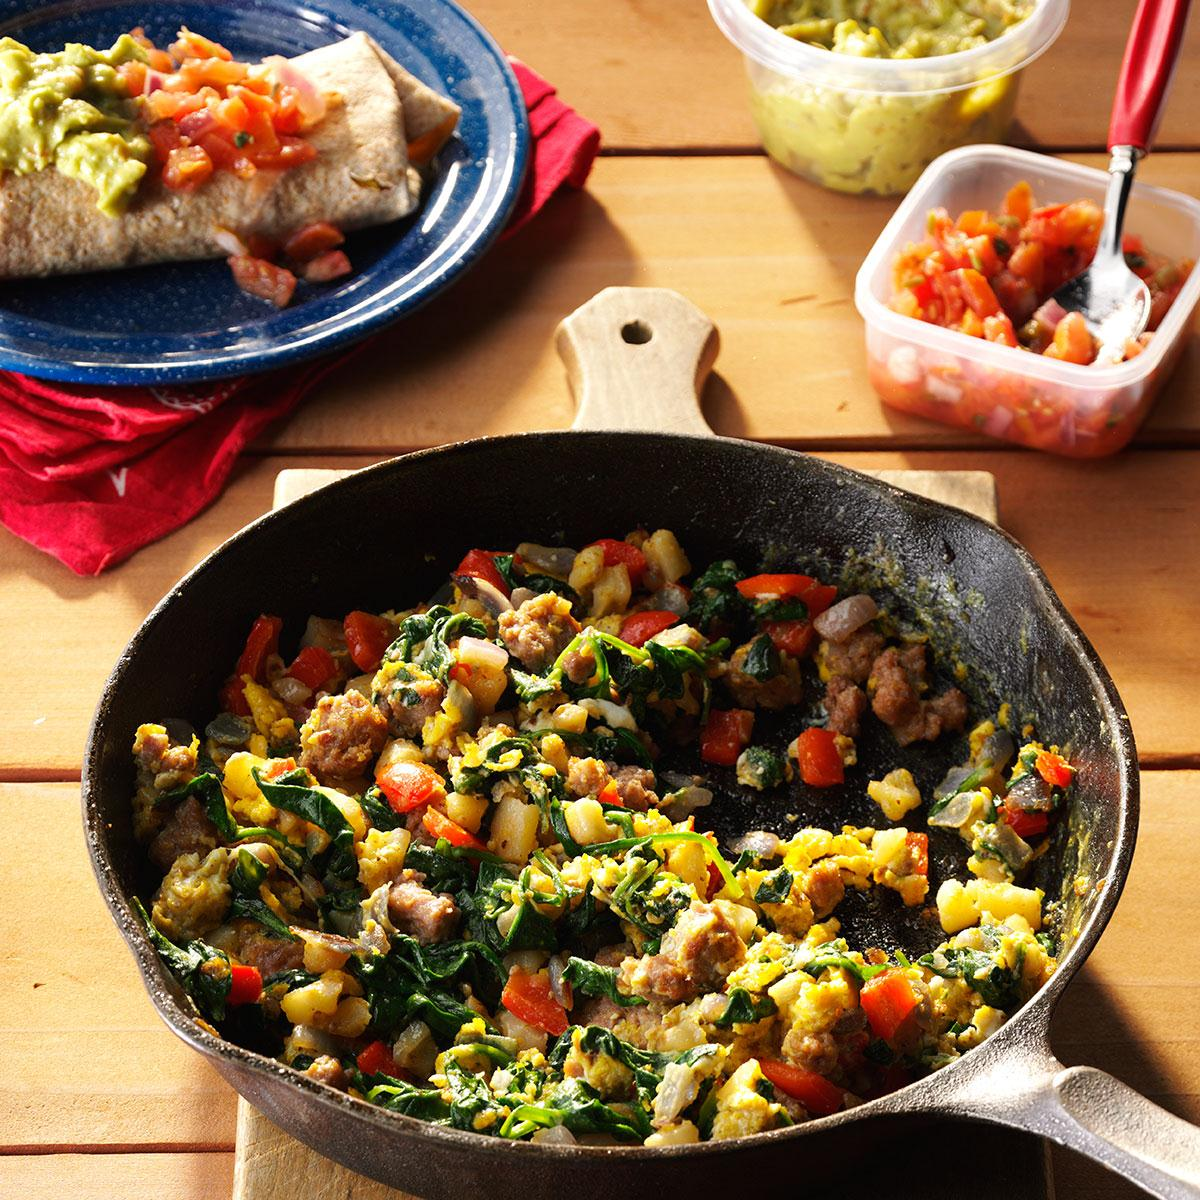 20 Make Ahead Camping Recipes For Easy Meal Planning: Egg & Spinach Breakfast Burritos Recipe